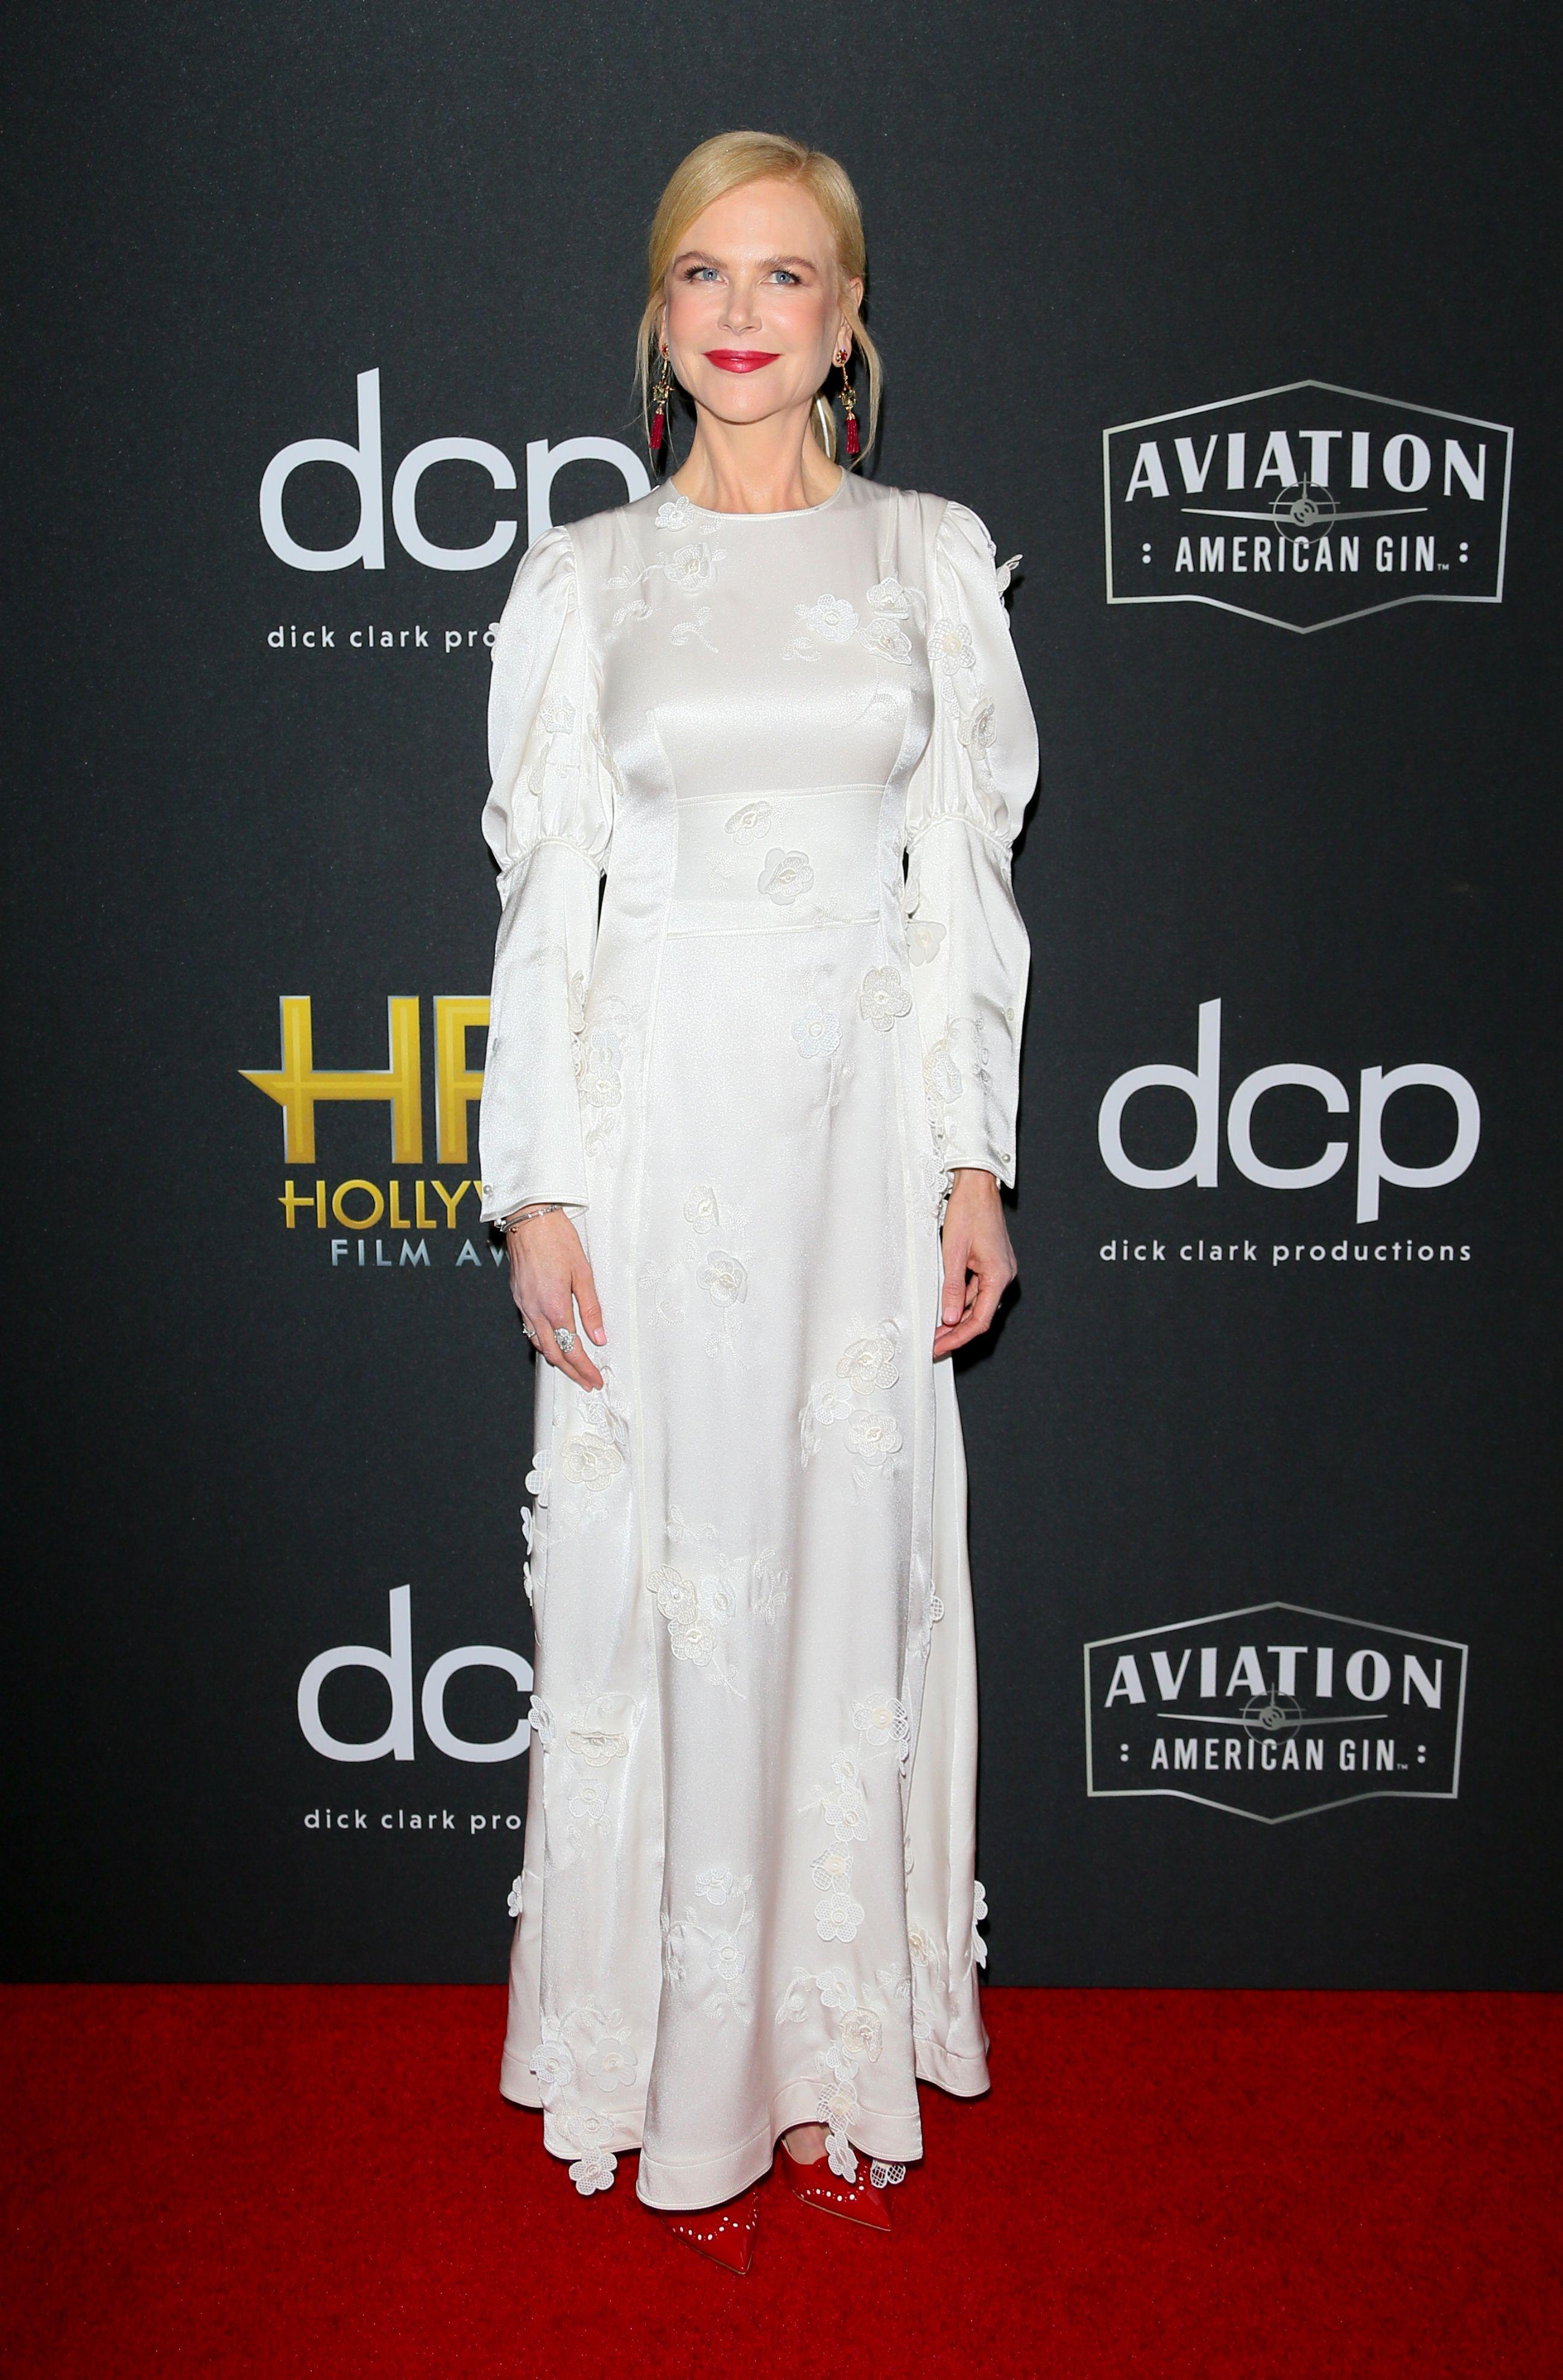 Nicole Kidman, Jennifer Garner and Olivia Wilde among November 2019's best dressed celebrities - Yahoo Lifestyle Australia